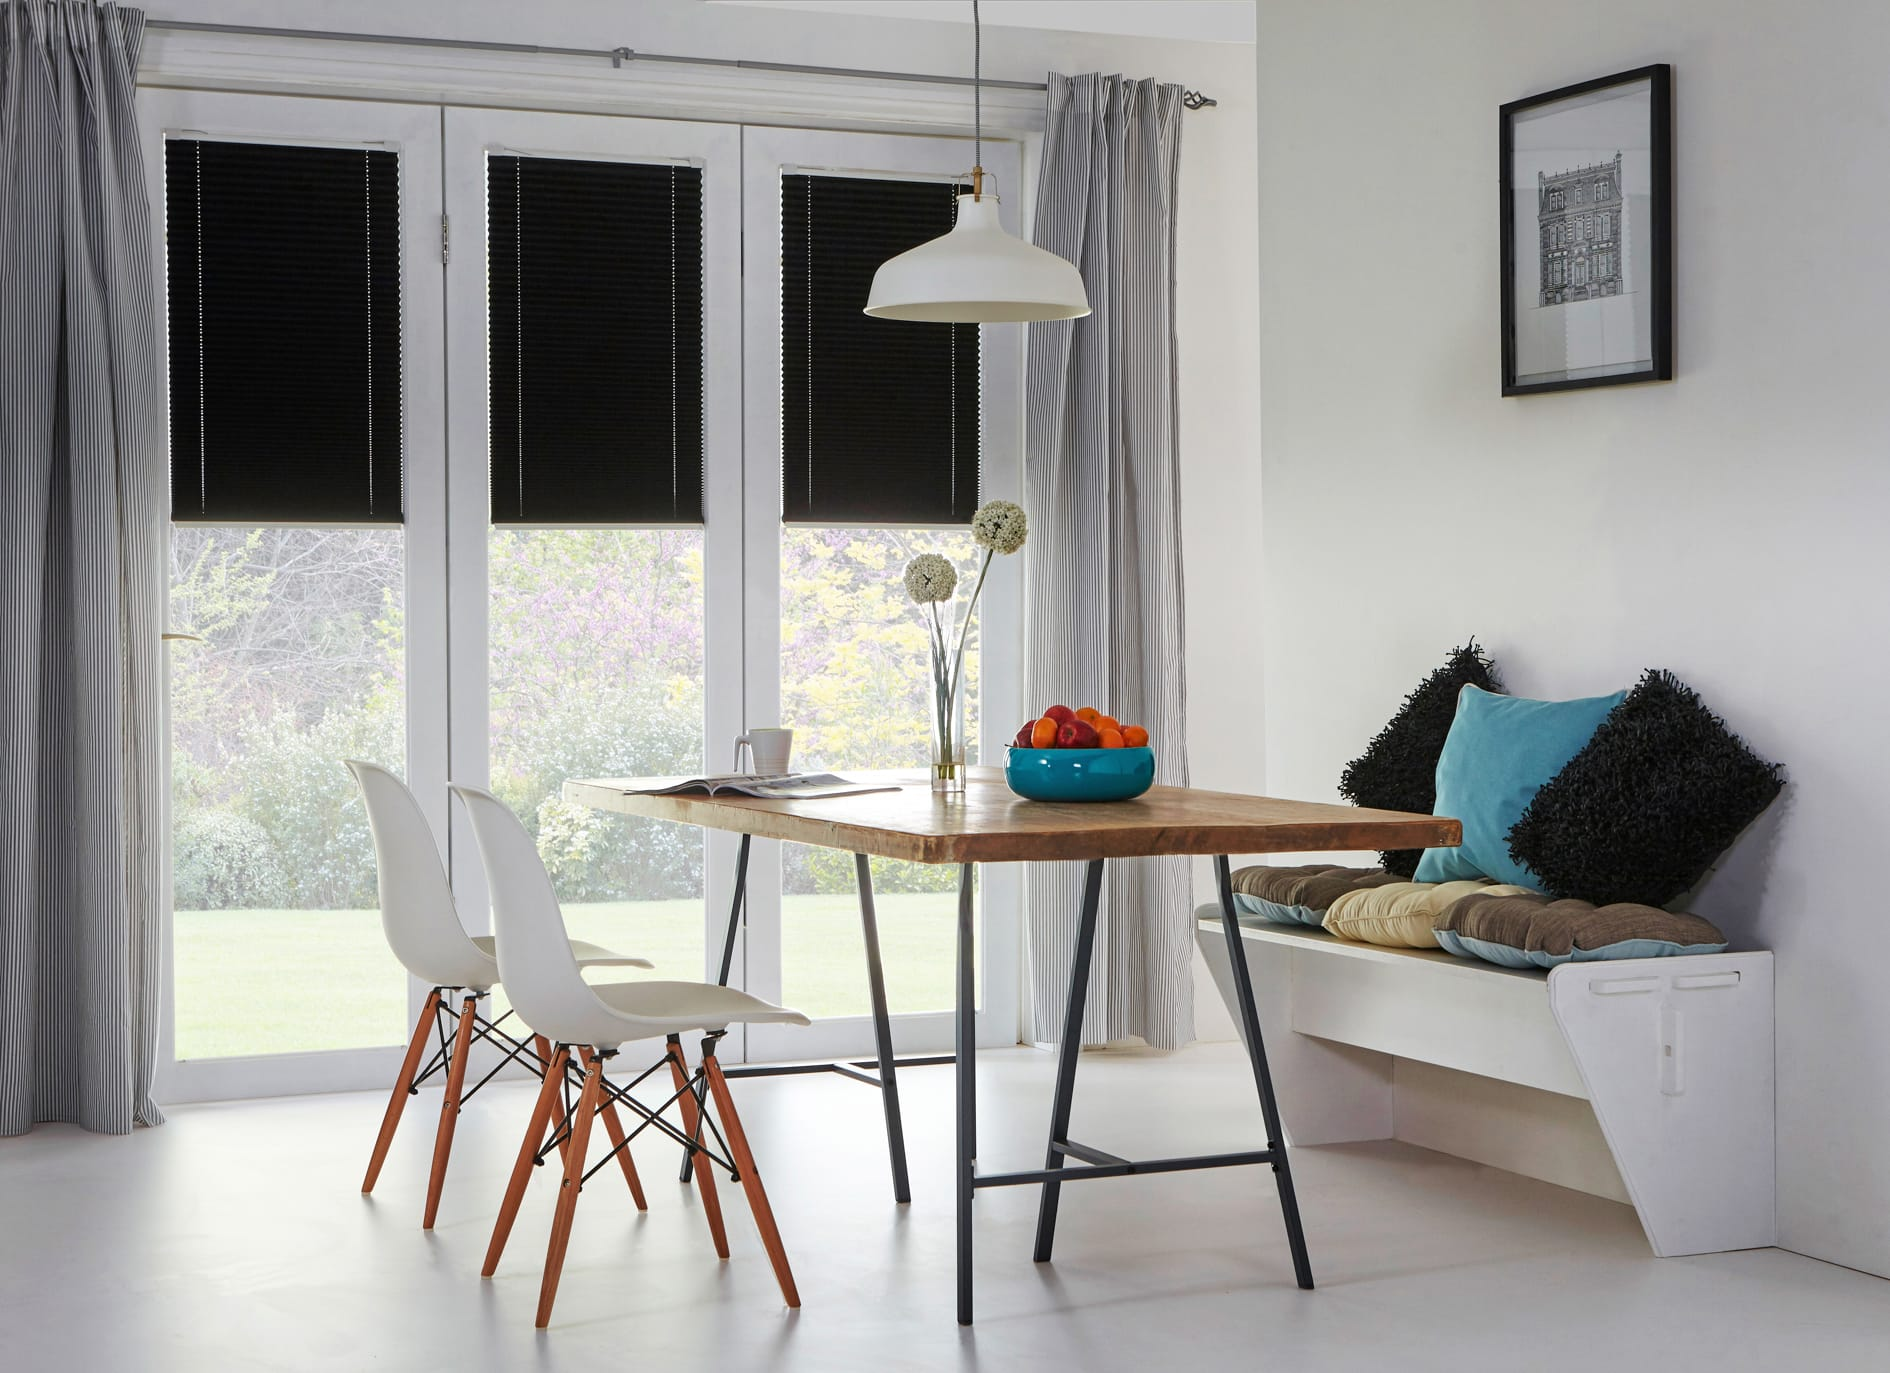 Black pleated blind with reflective coating